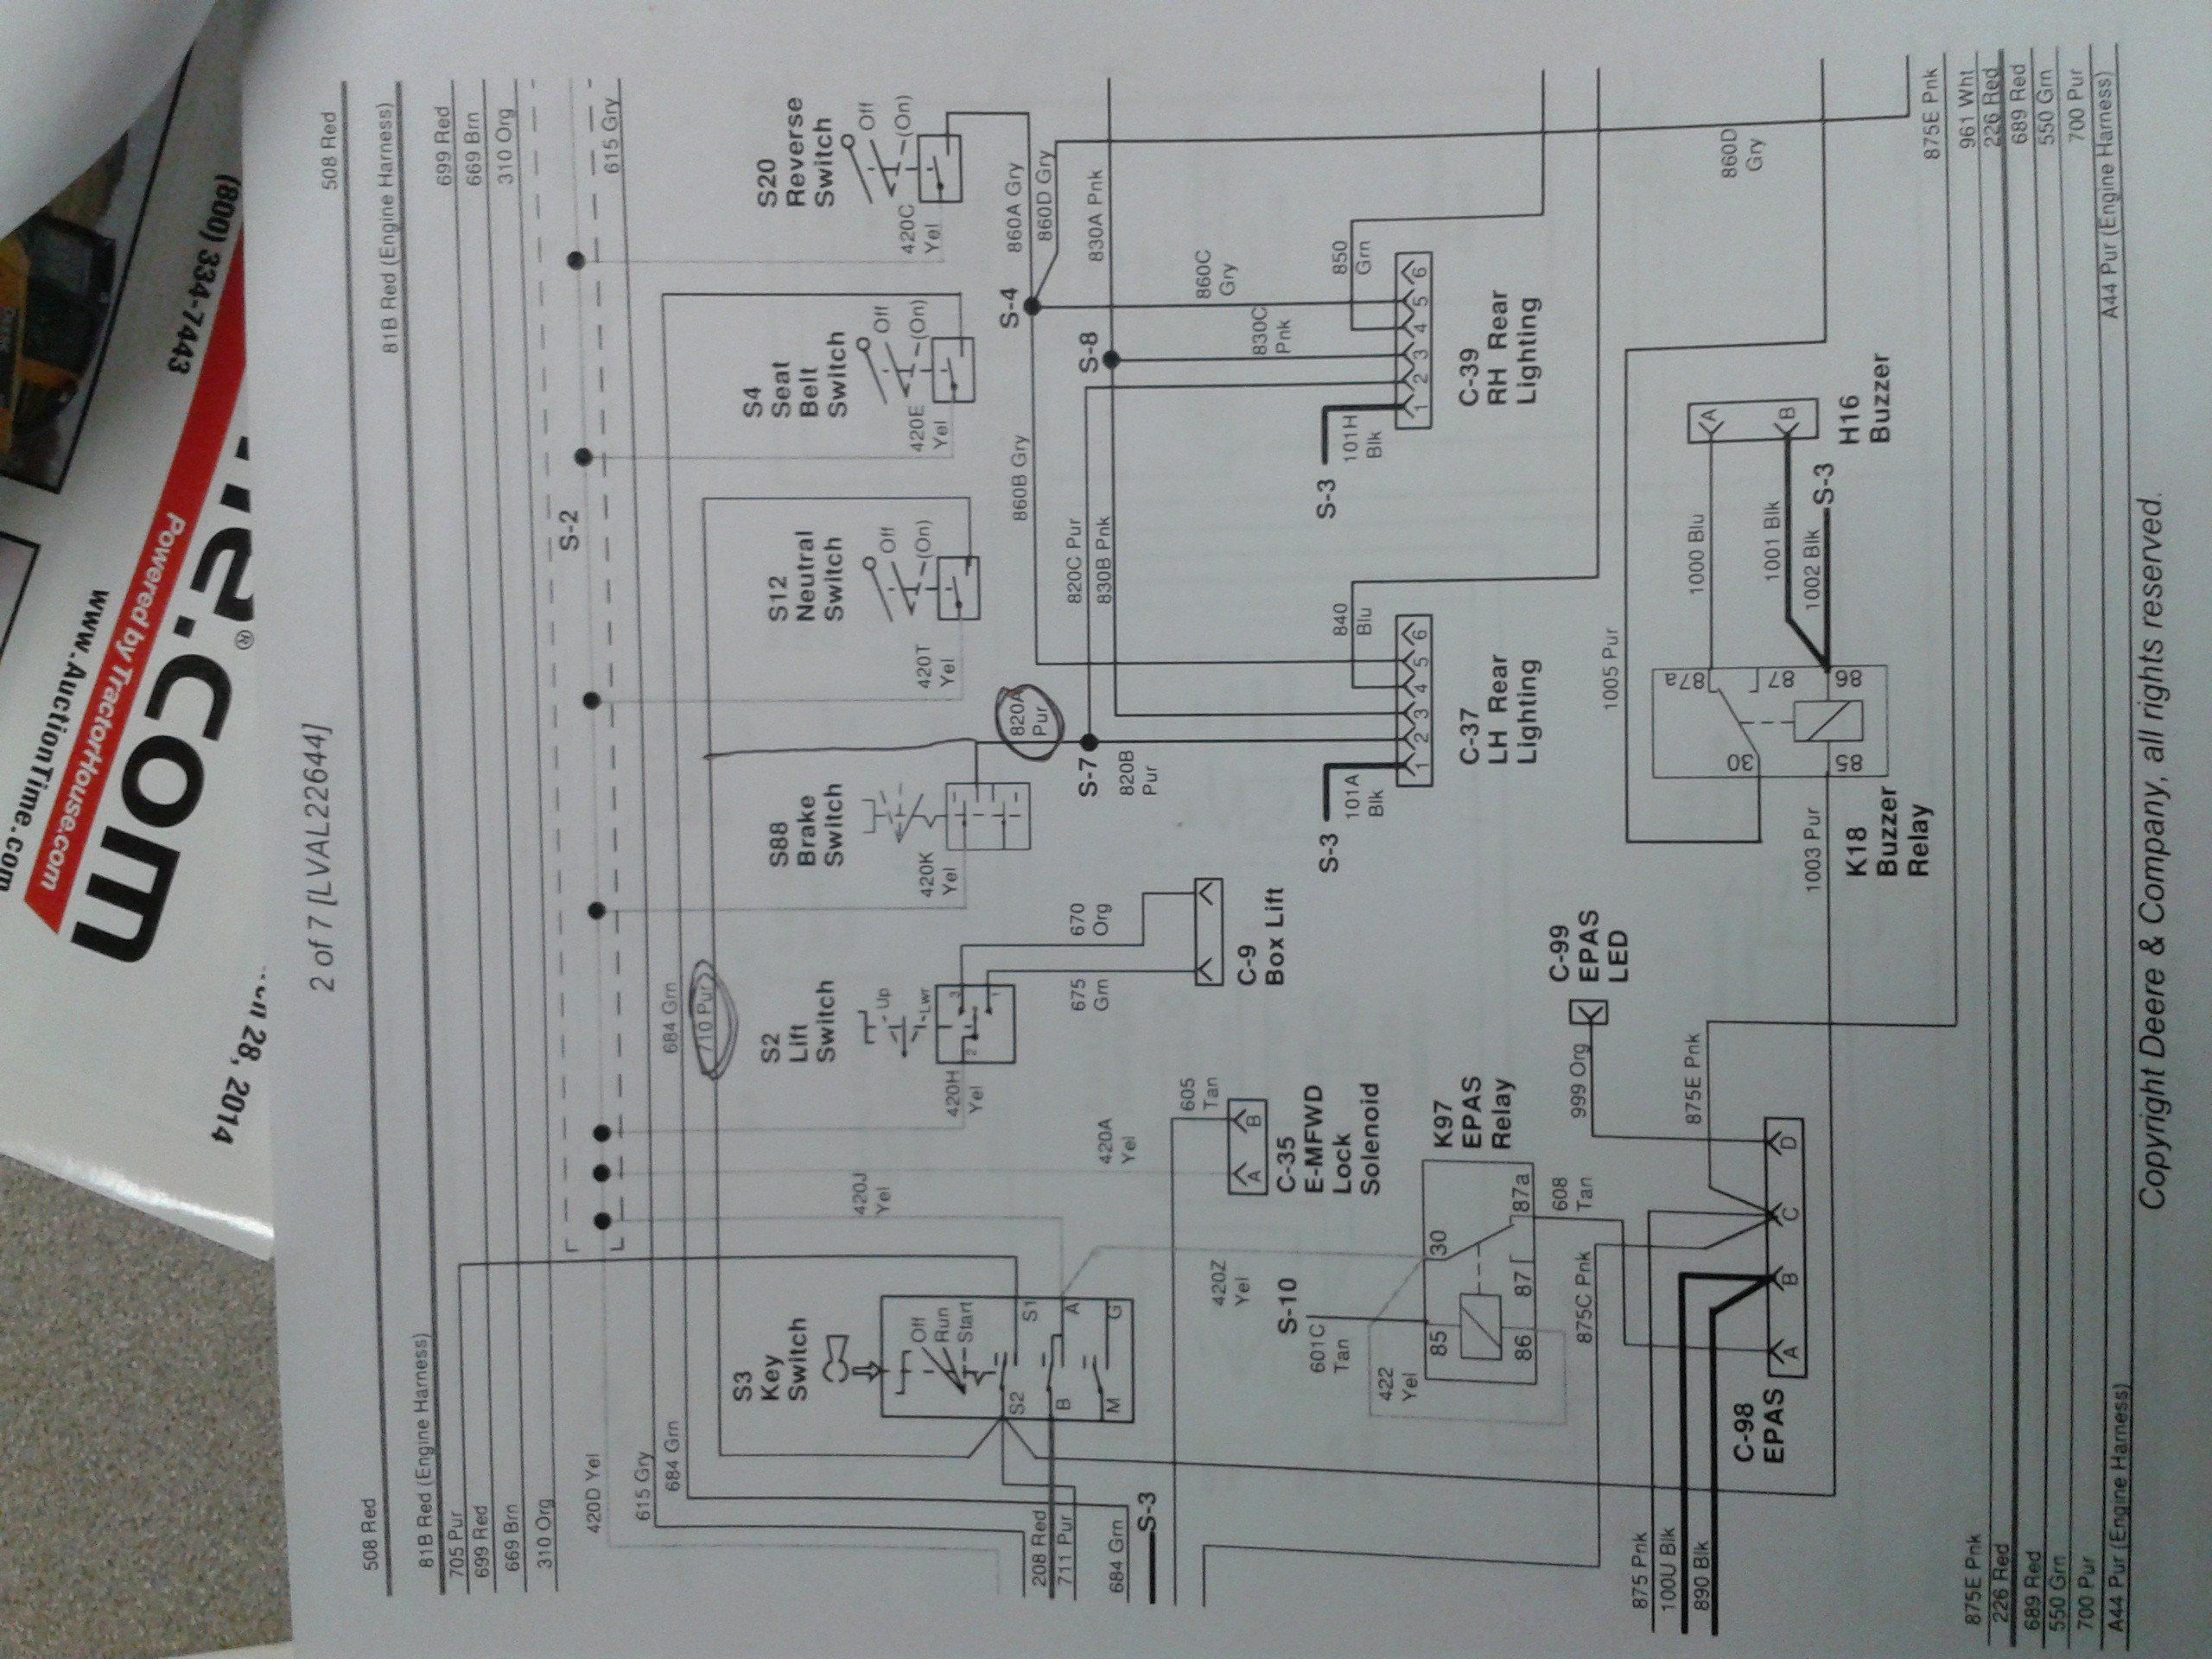 Gator Cx Wiring Diagram - Wiring Diagrams Rename on